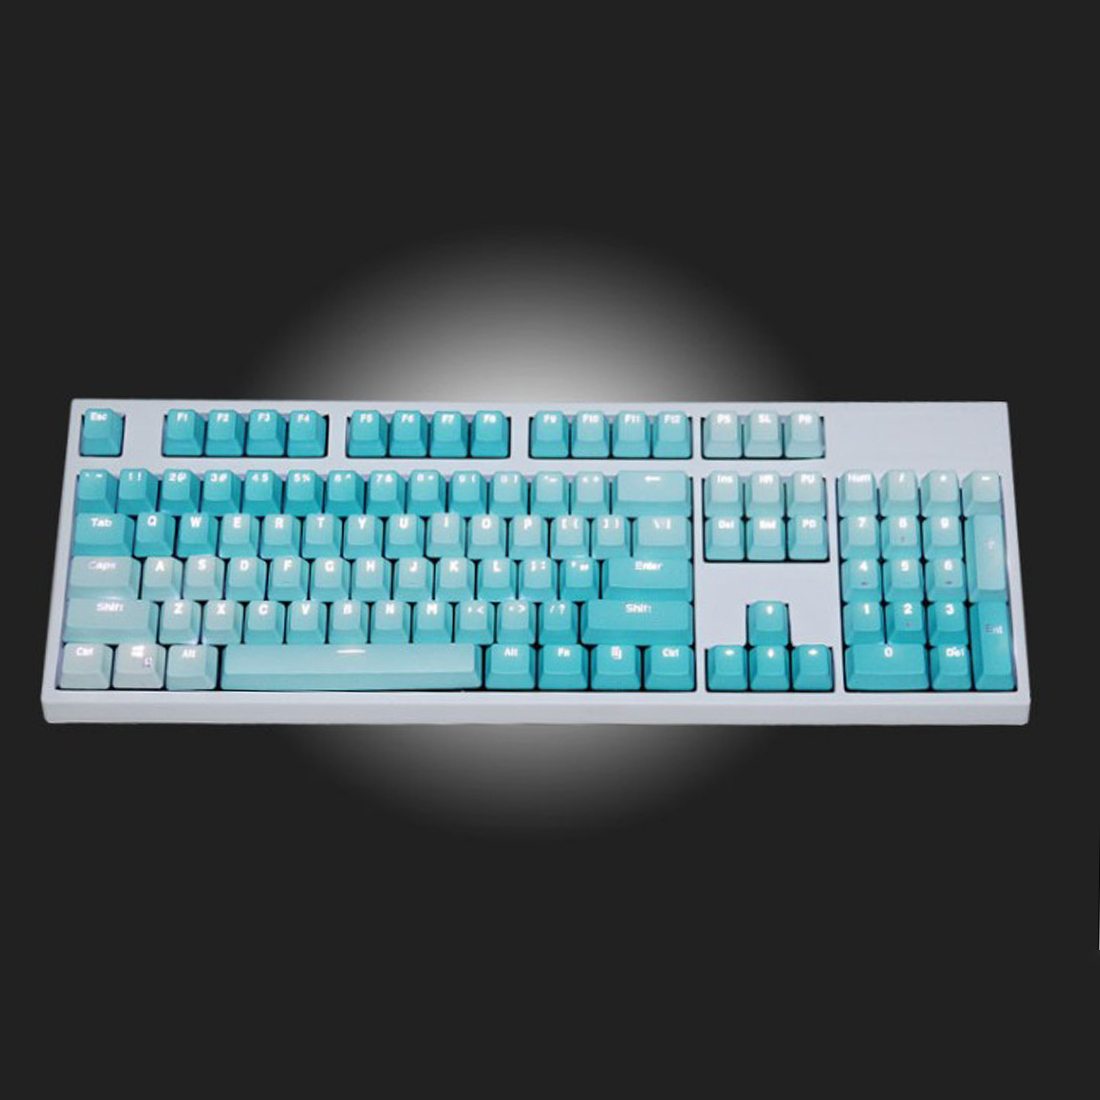 Unicorn 104 Keys Wired Mechanical Keyboard E-sports Gaming Keyboard (White Backlit + Frost Blue Keyboard)